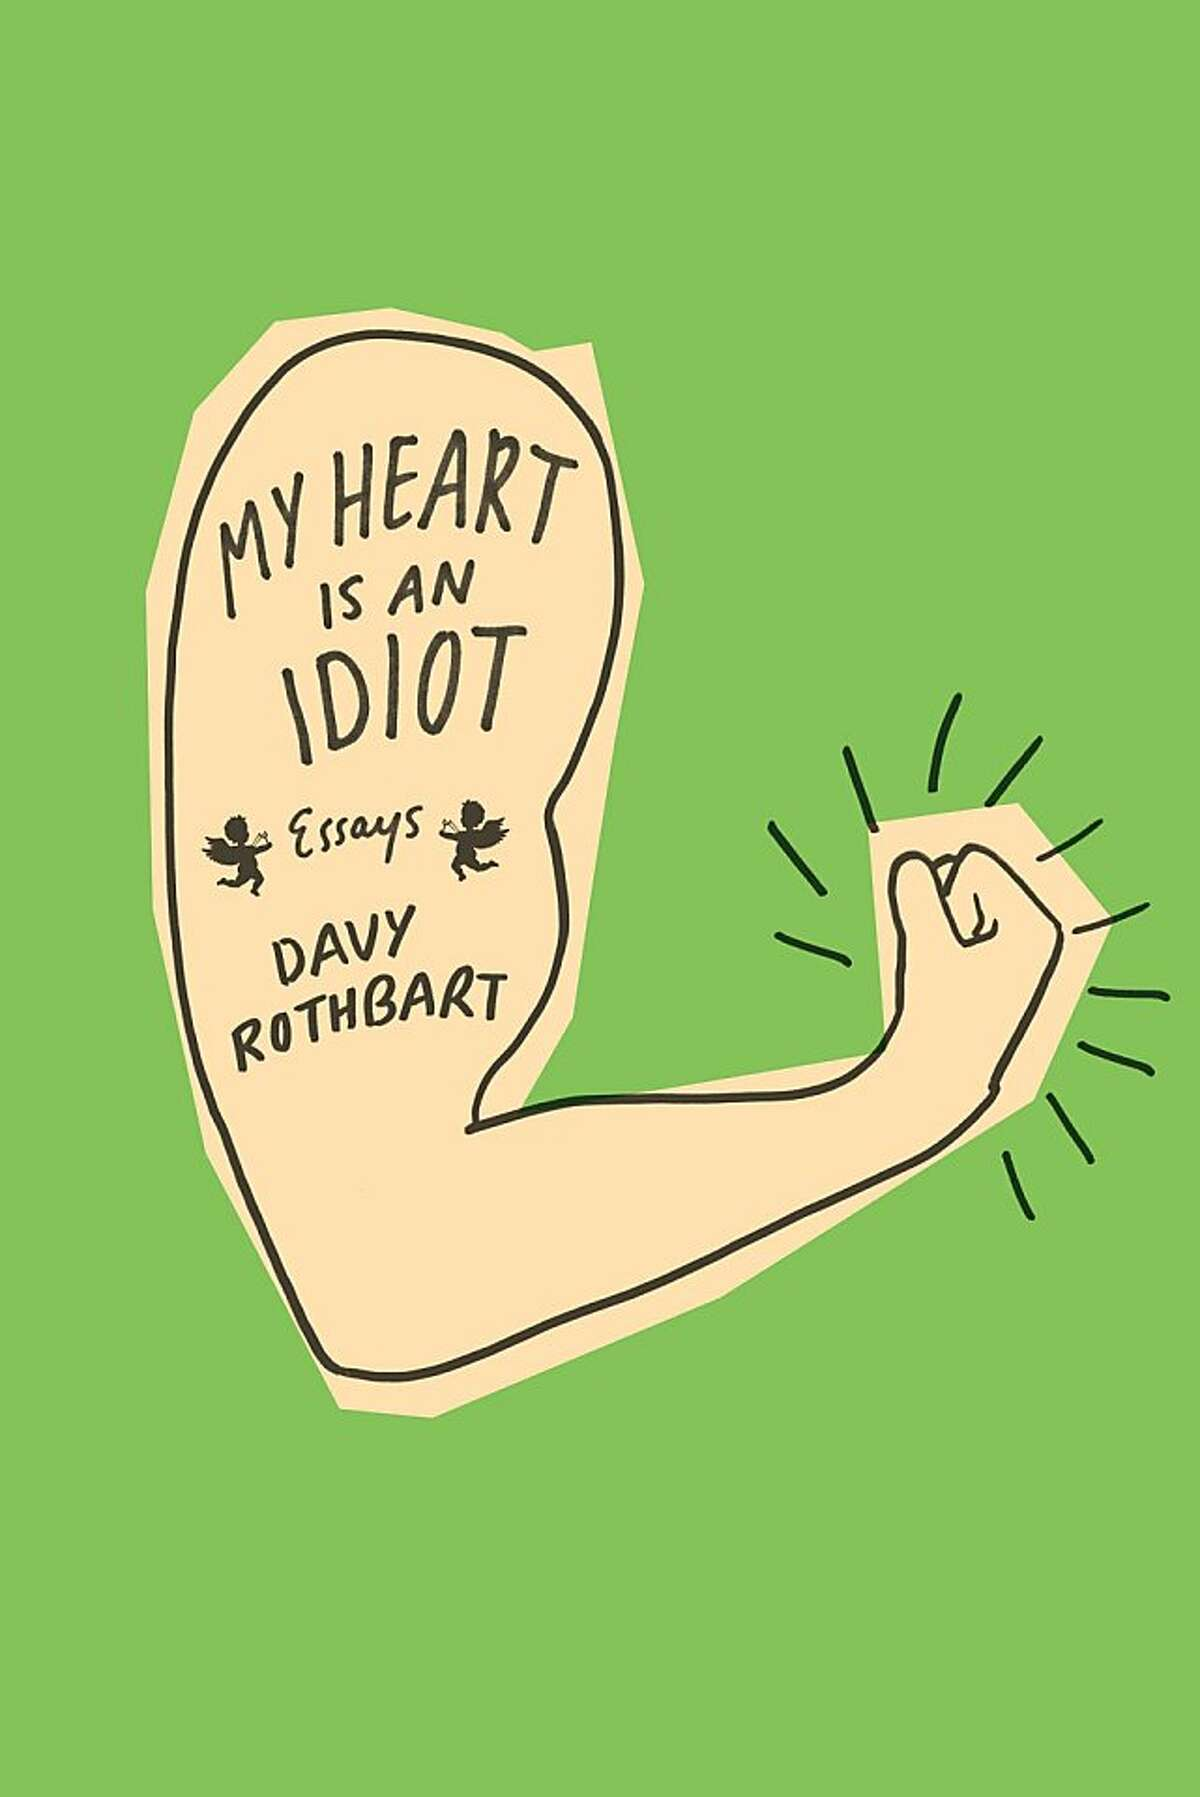 My Hear Is an Idiot, by Davy Rothbart